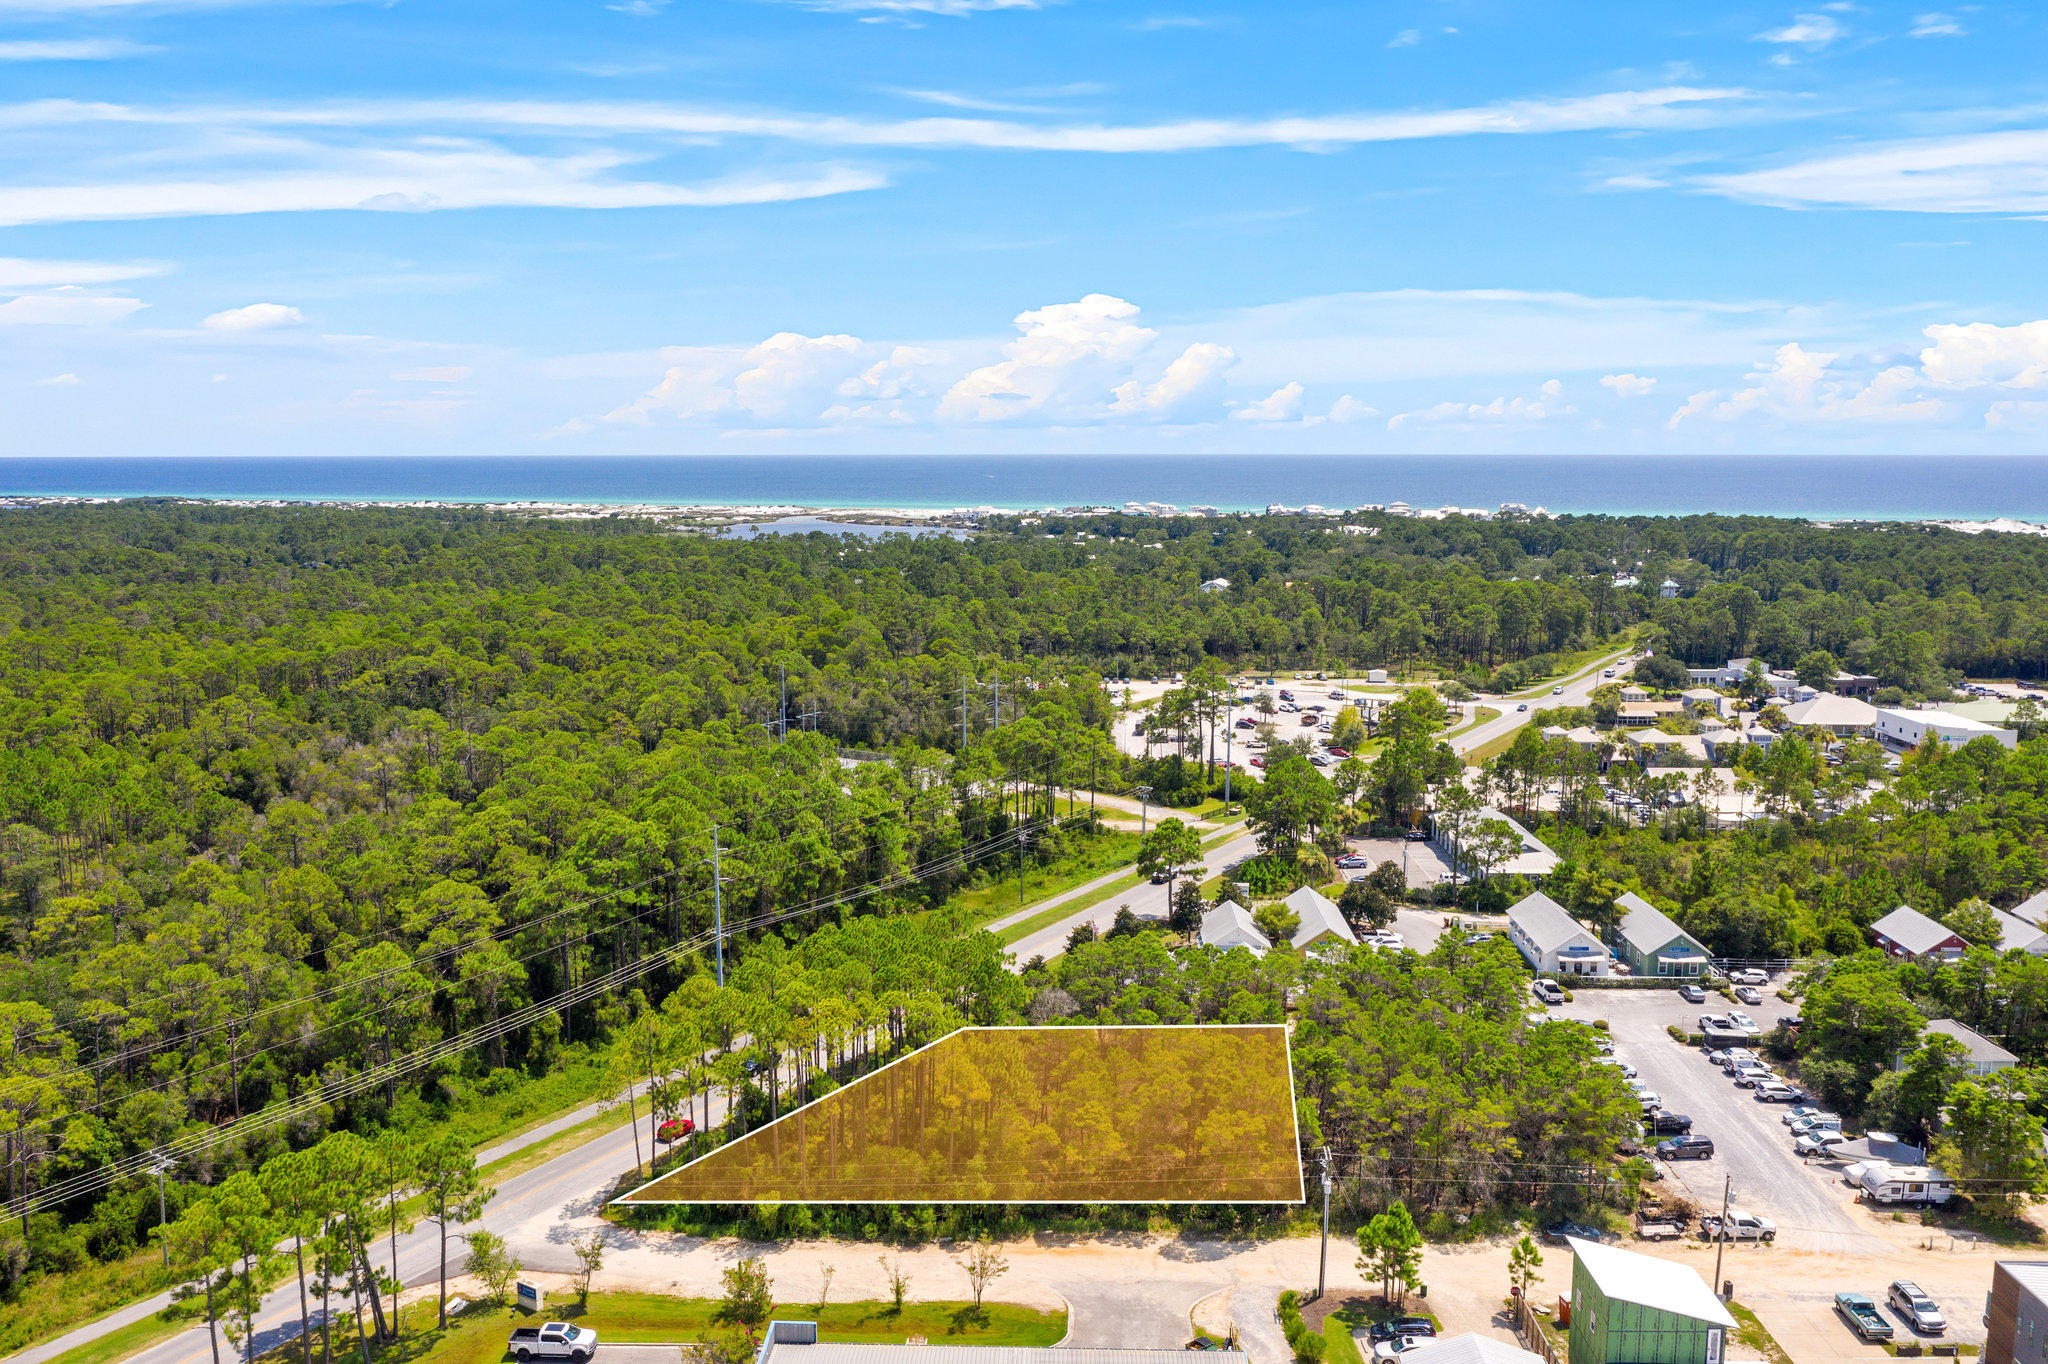 Prime Commercial Real Estate with over 1/2 an acre along HWY 283 in Grayton Beach. Land is being sold with a full Development Order from Walton County in place. Engineering plans, surveys and all documents convey with the sale